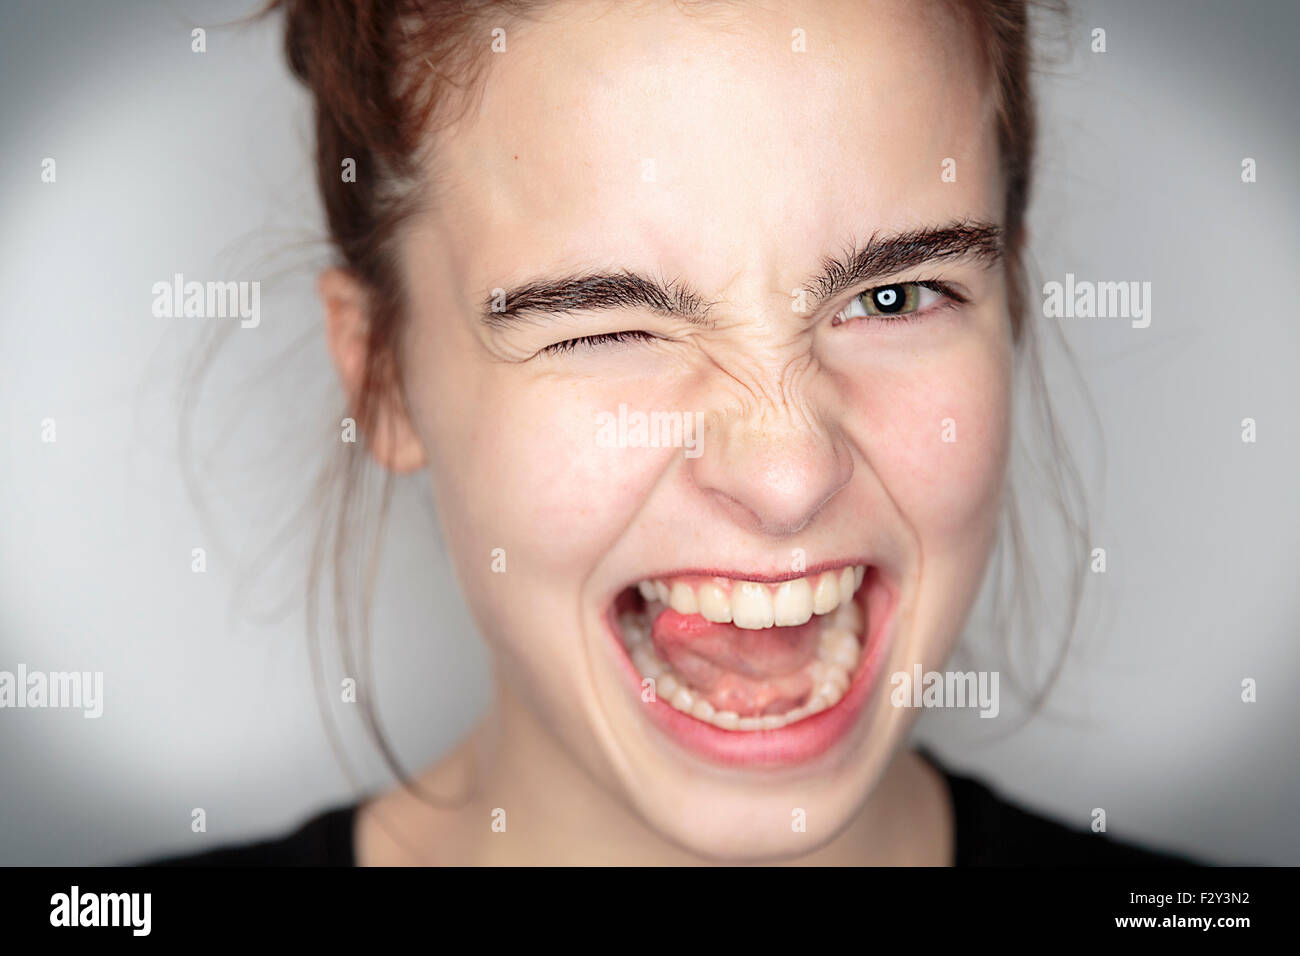 close up portrait of an enthusiastic teenage girl - Stock Image